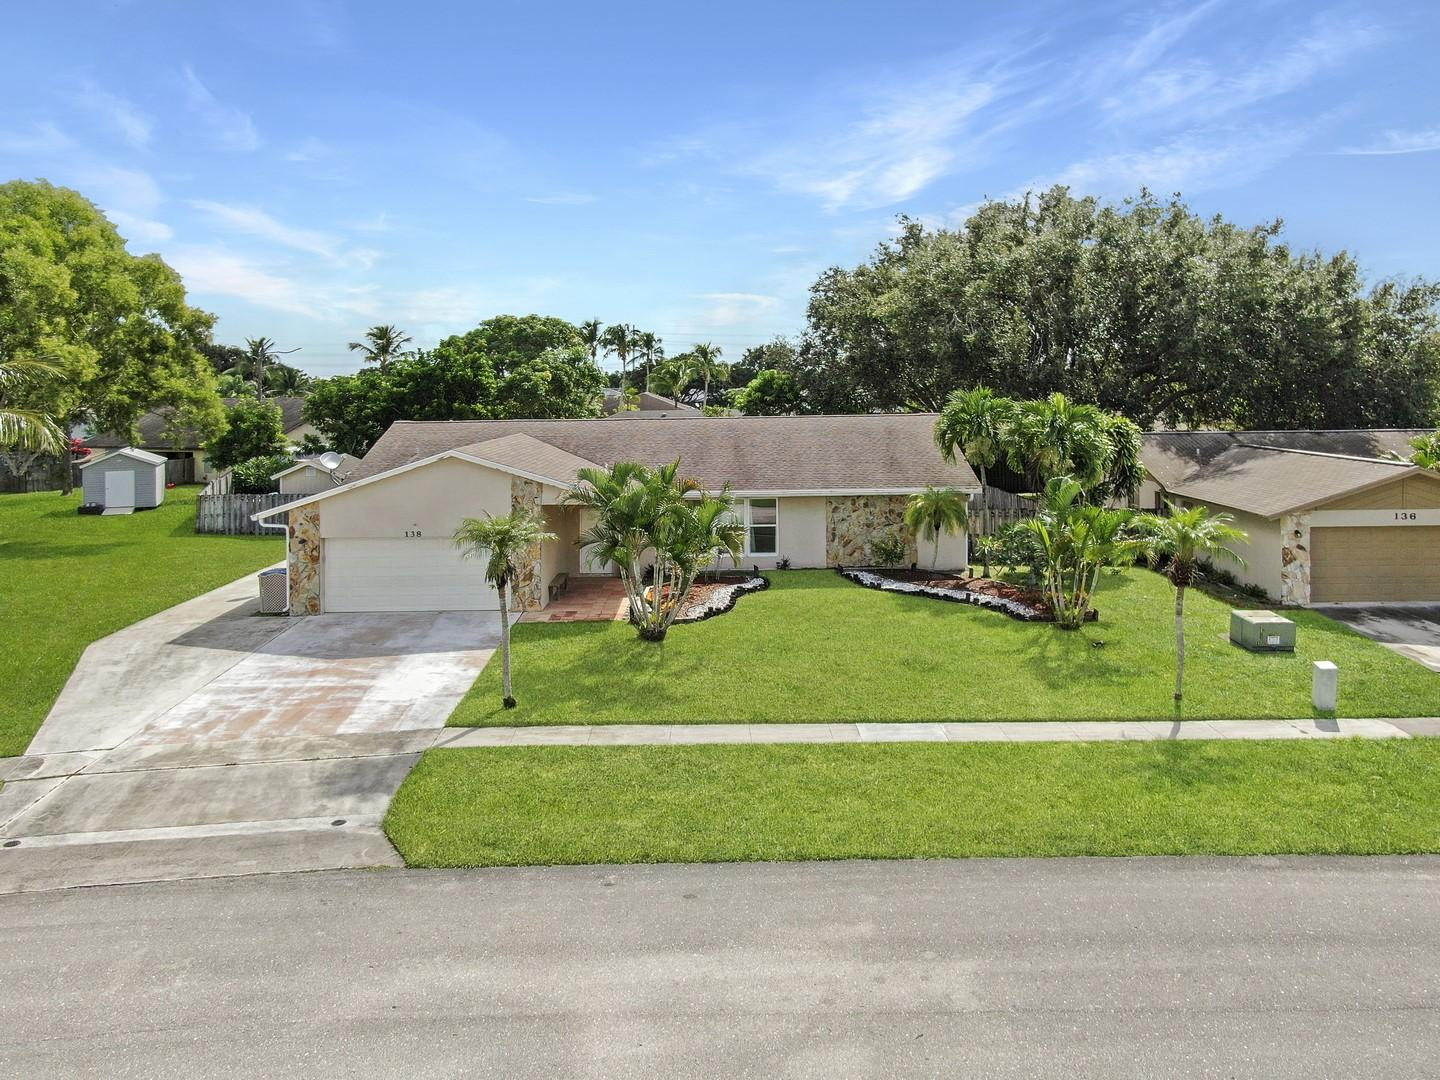 138 Santa Monica Avenue Royal Palm Beach, FL 33411 small photo 37